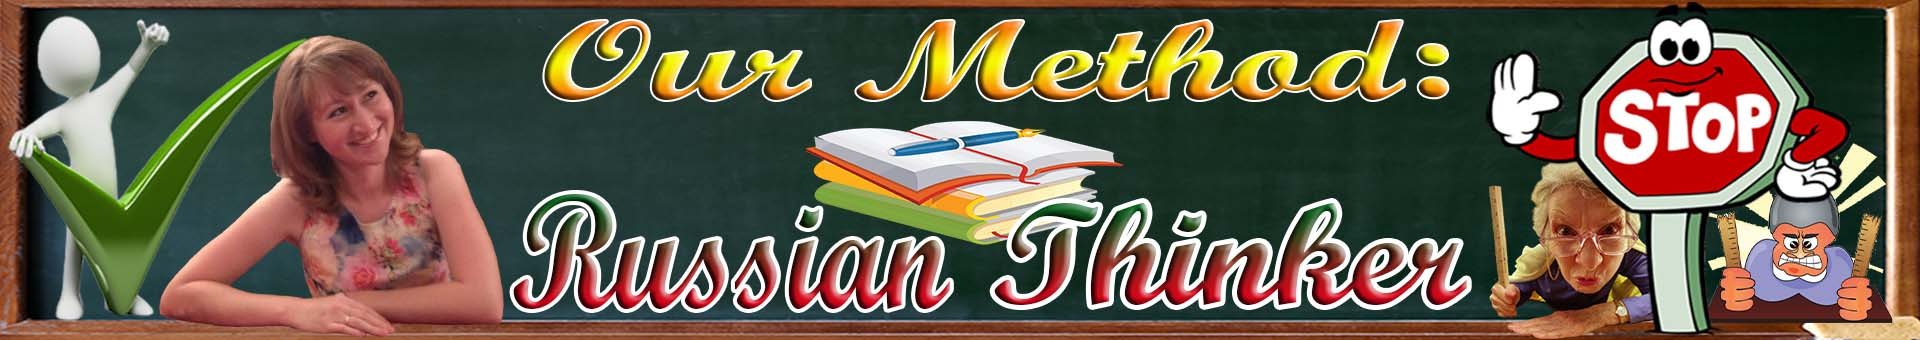 Our Method Russian Thinker - Our Method